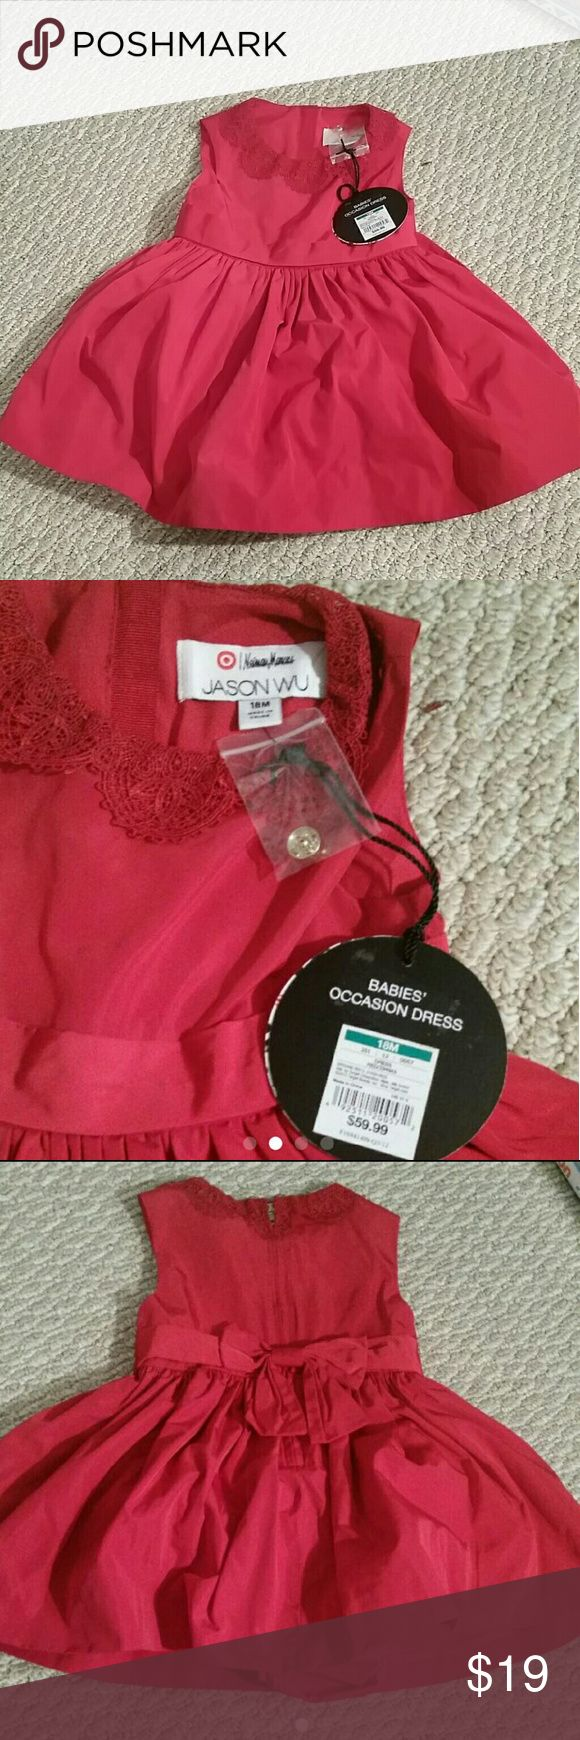 Nwt 18M Neiman Marcus dress Brand new with the tag  Size 18m $59 Jason wu dress by Neiman Marcus  The dress is puffy never seen dress like these so gorgeous  You know directly if these designer dress Neiman Marcus Dresses Formal